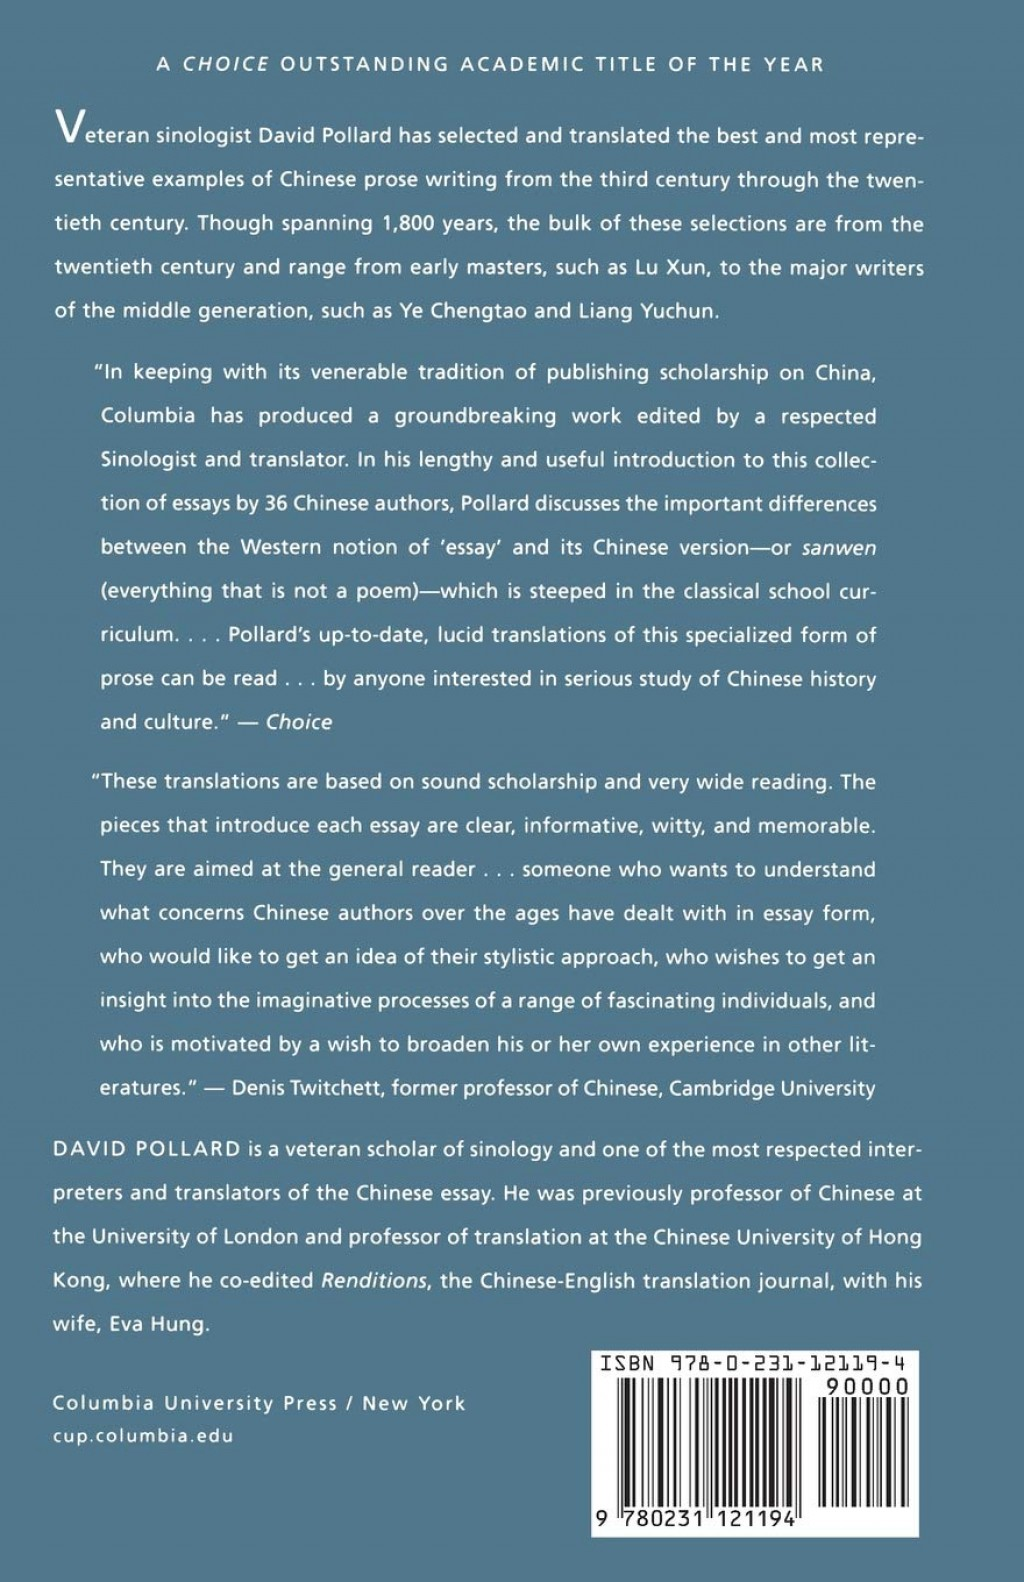 011 Essay Example Chinese Amazing Art Topics Vce Formats Sheet Large